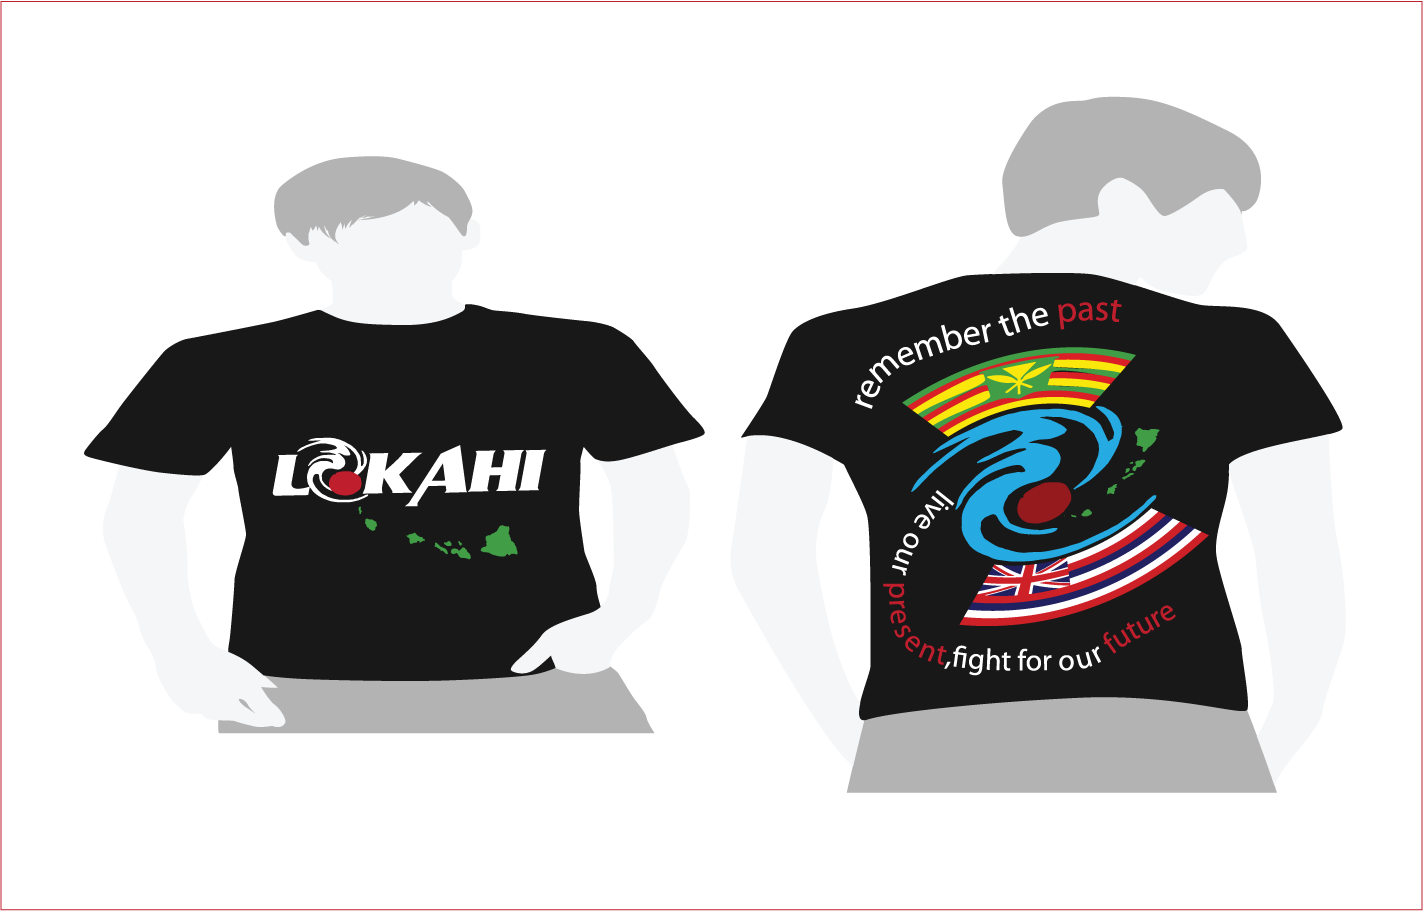 Clothing Design by Sri Lata - Entry No. 94 in the Clothing Design Contest Creative Clothing Design for LOKAHI designs.